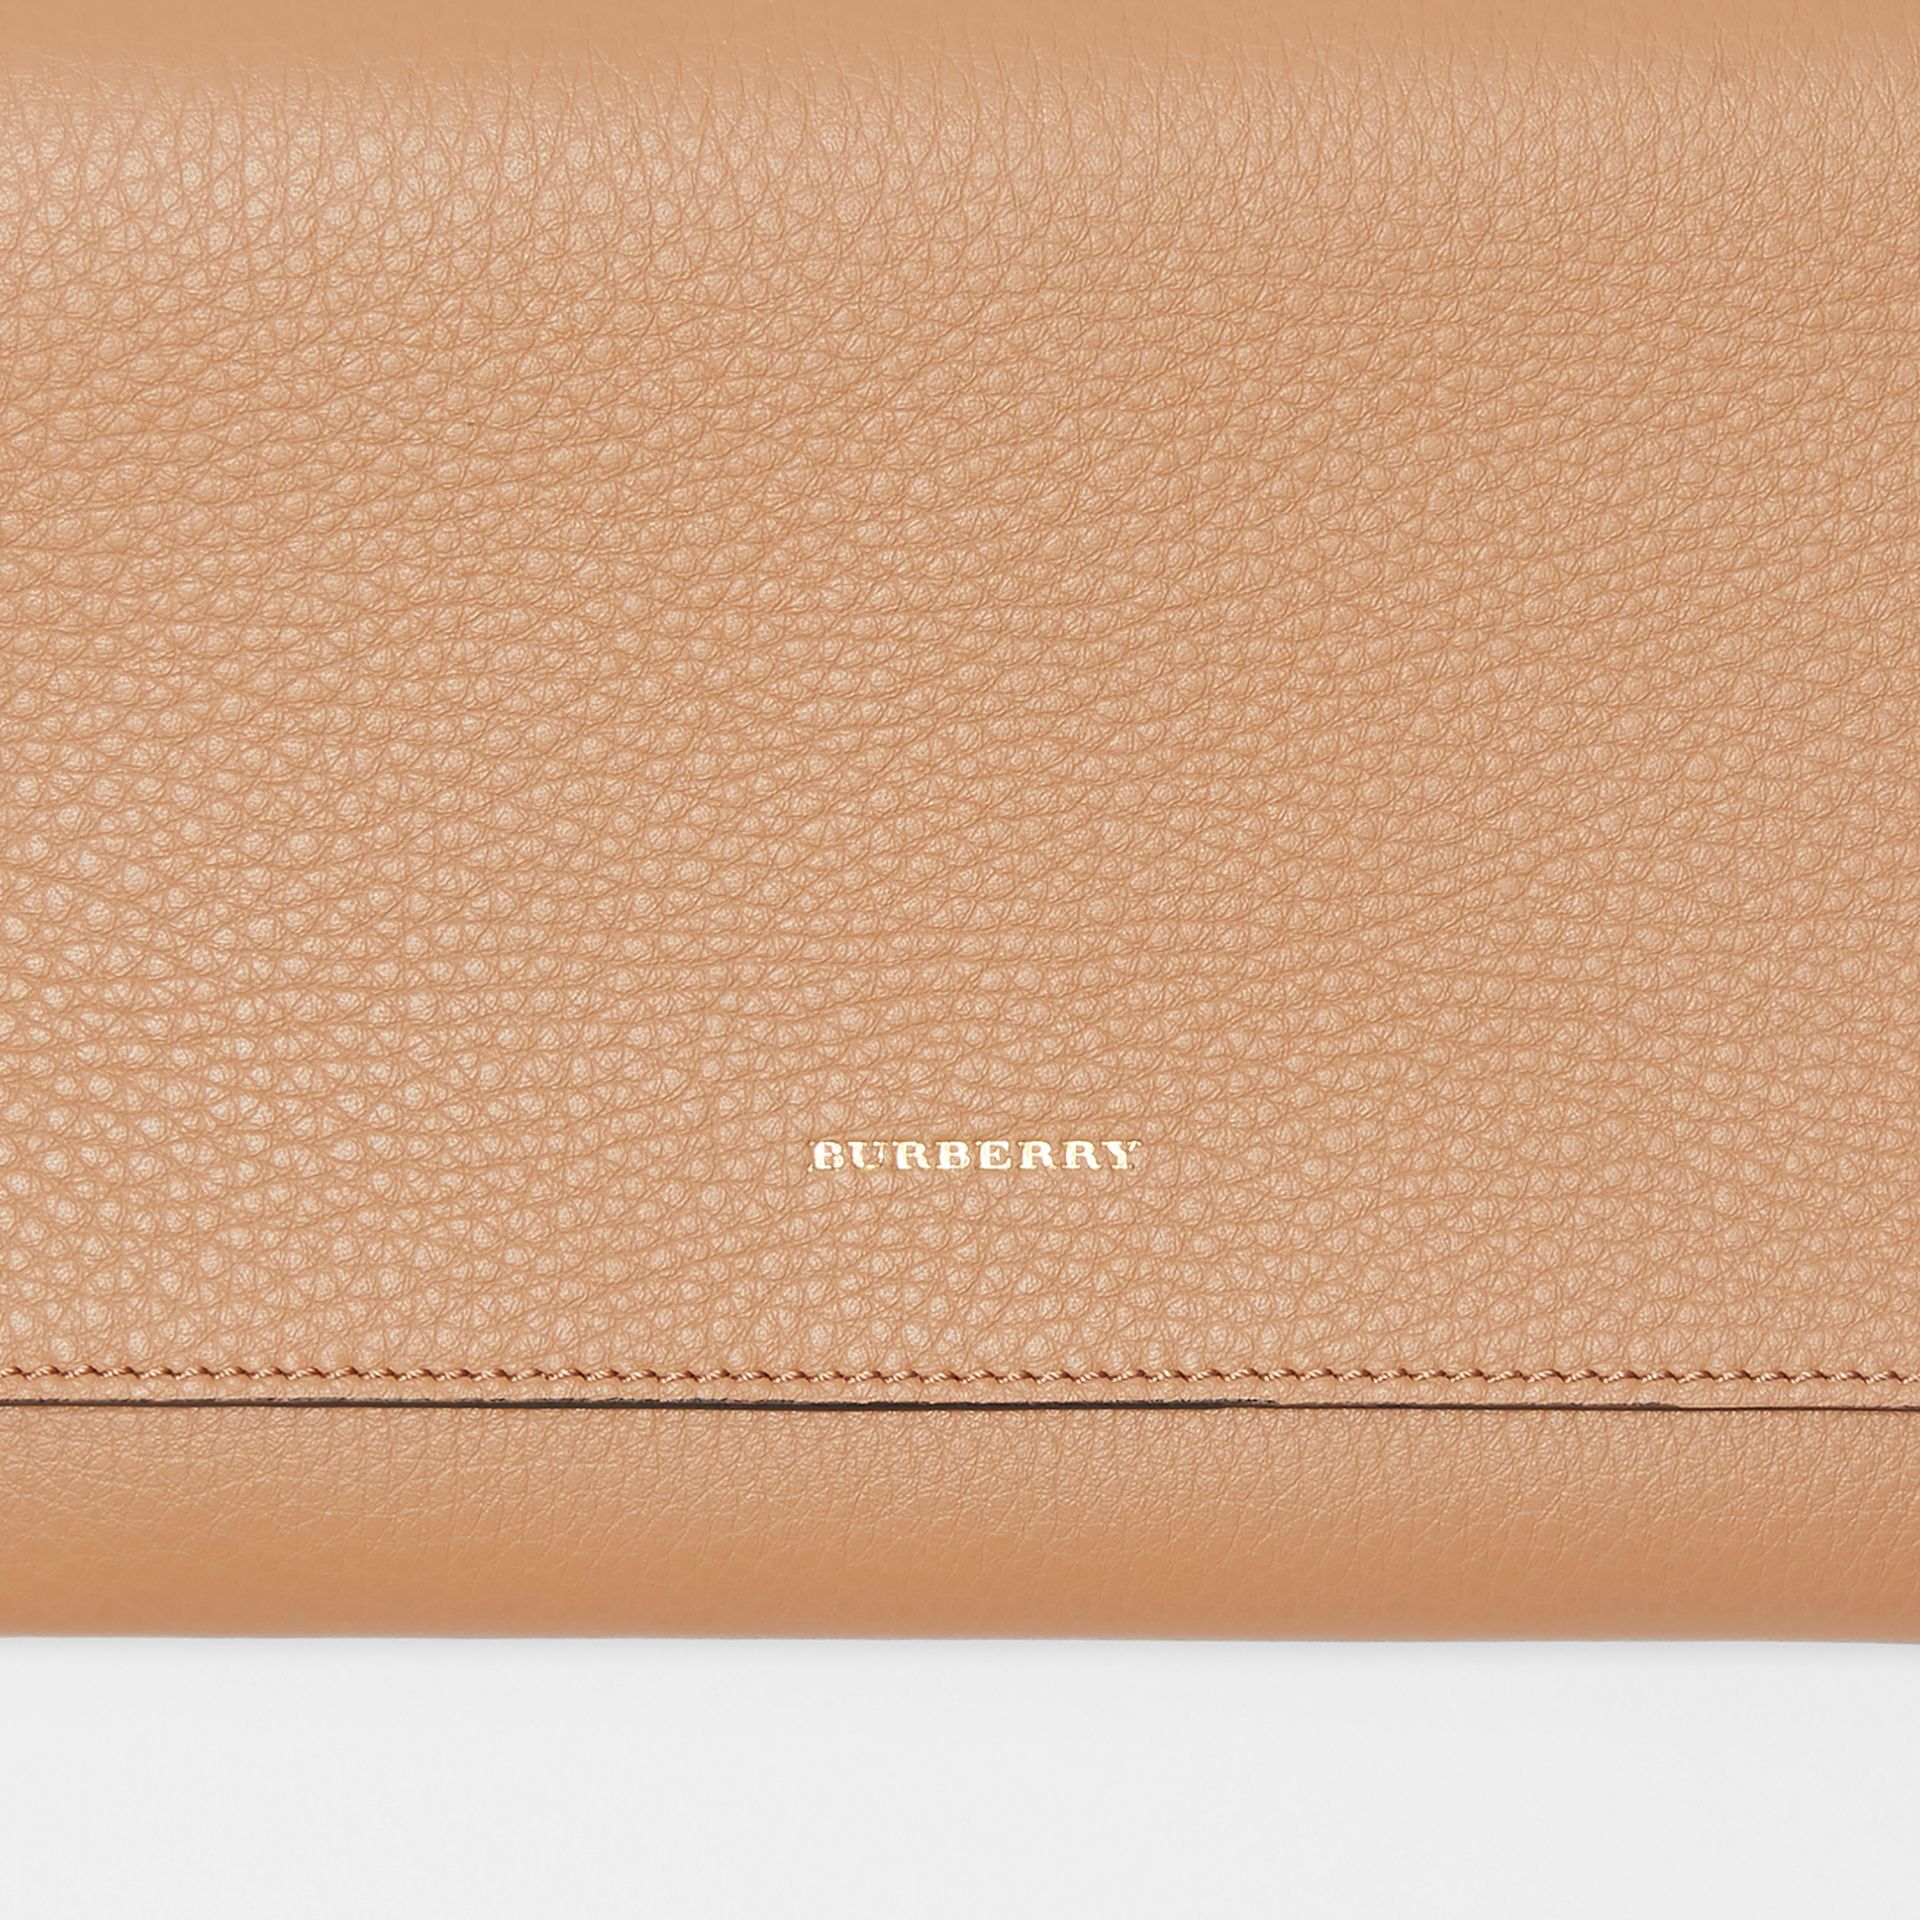 Two-tone Leather Wristlet Clutch in Light Camel - Women | Burberry United Kingdom - gallery image 1